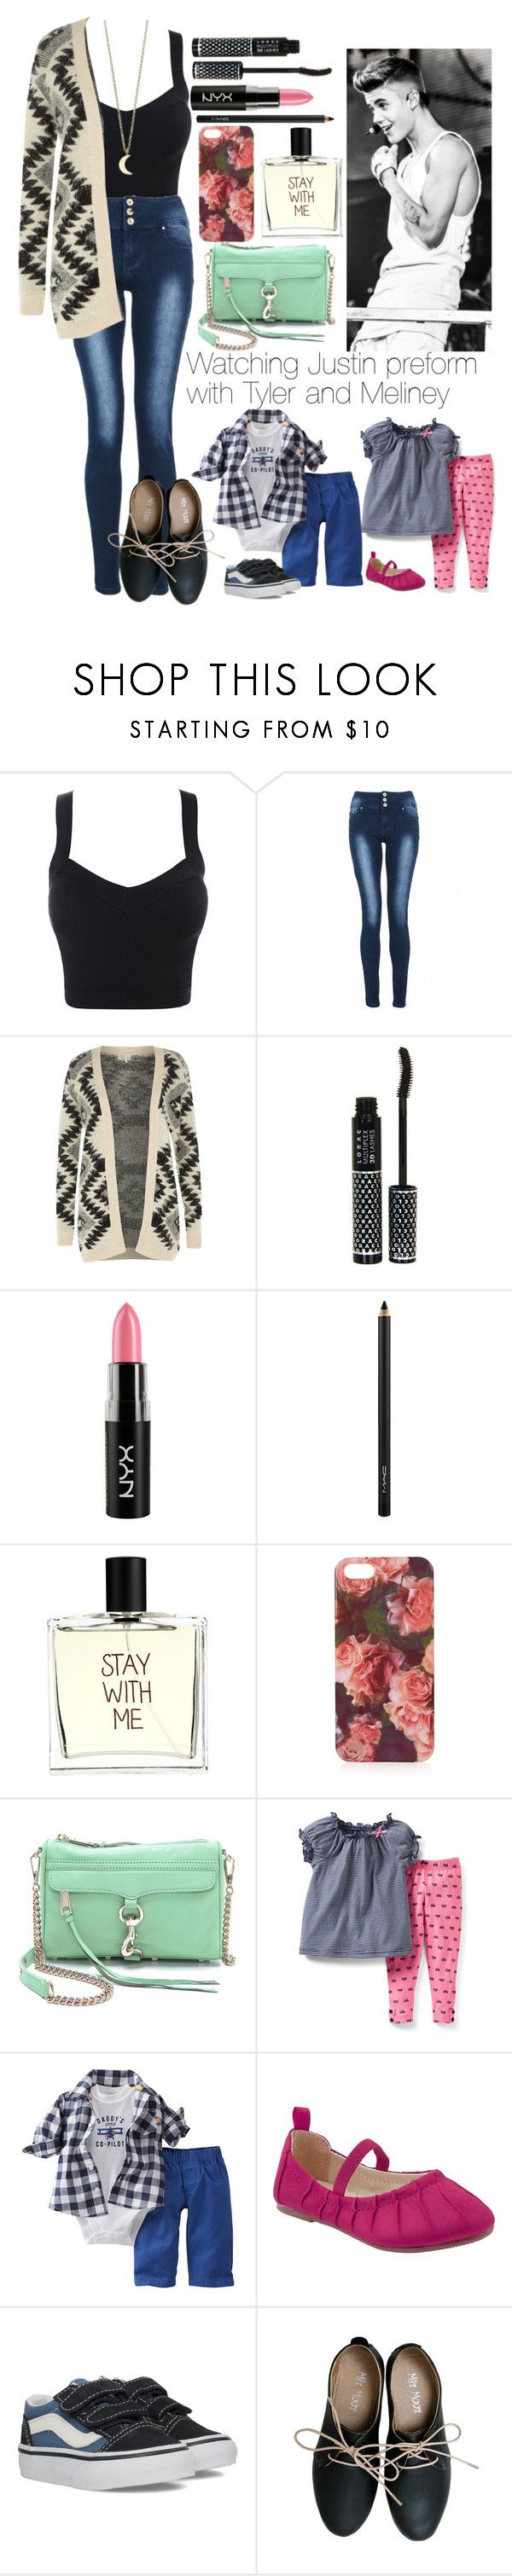 """""""Watching Justin Preform with Tyler and Meliney"""" by justgirlydirectioners ❤ liked on Polyvore featuring Quiz, Justin Bieber, Cameo Rose, LORAC, NYX, MAC Cosmetics, Liaison De Parfum, Topshop, Rebecca Minkoff and Carter's"""